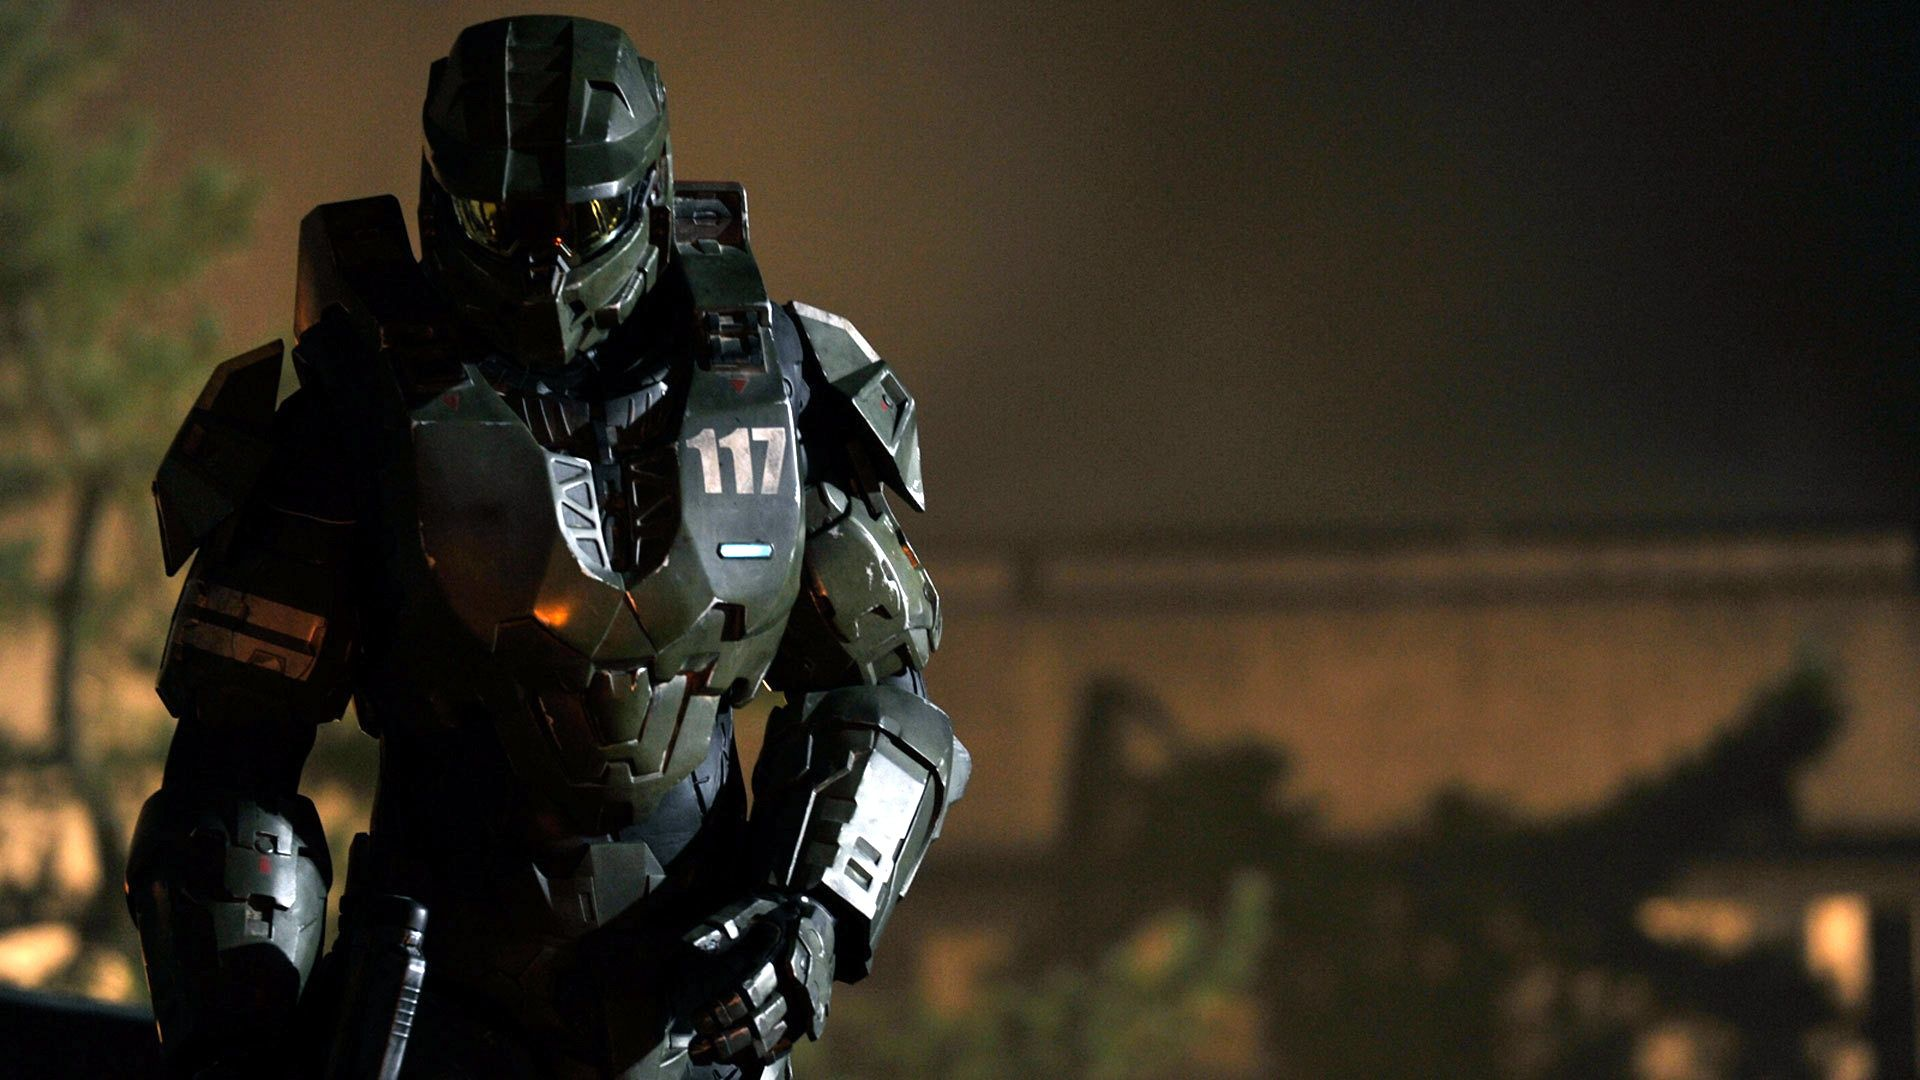 Halo 4 Games Hd 1080p Wallpapers Download Halo Series